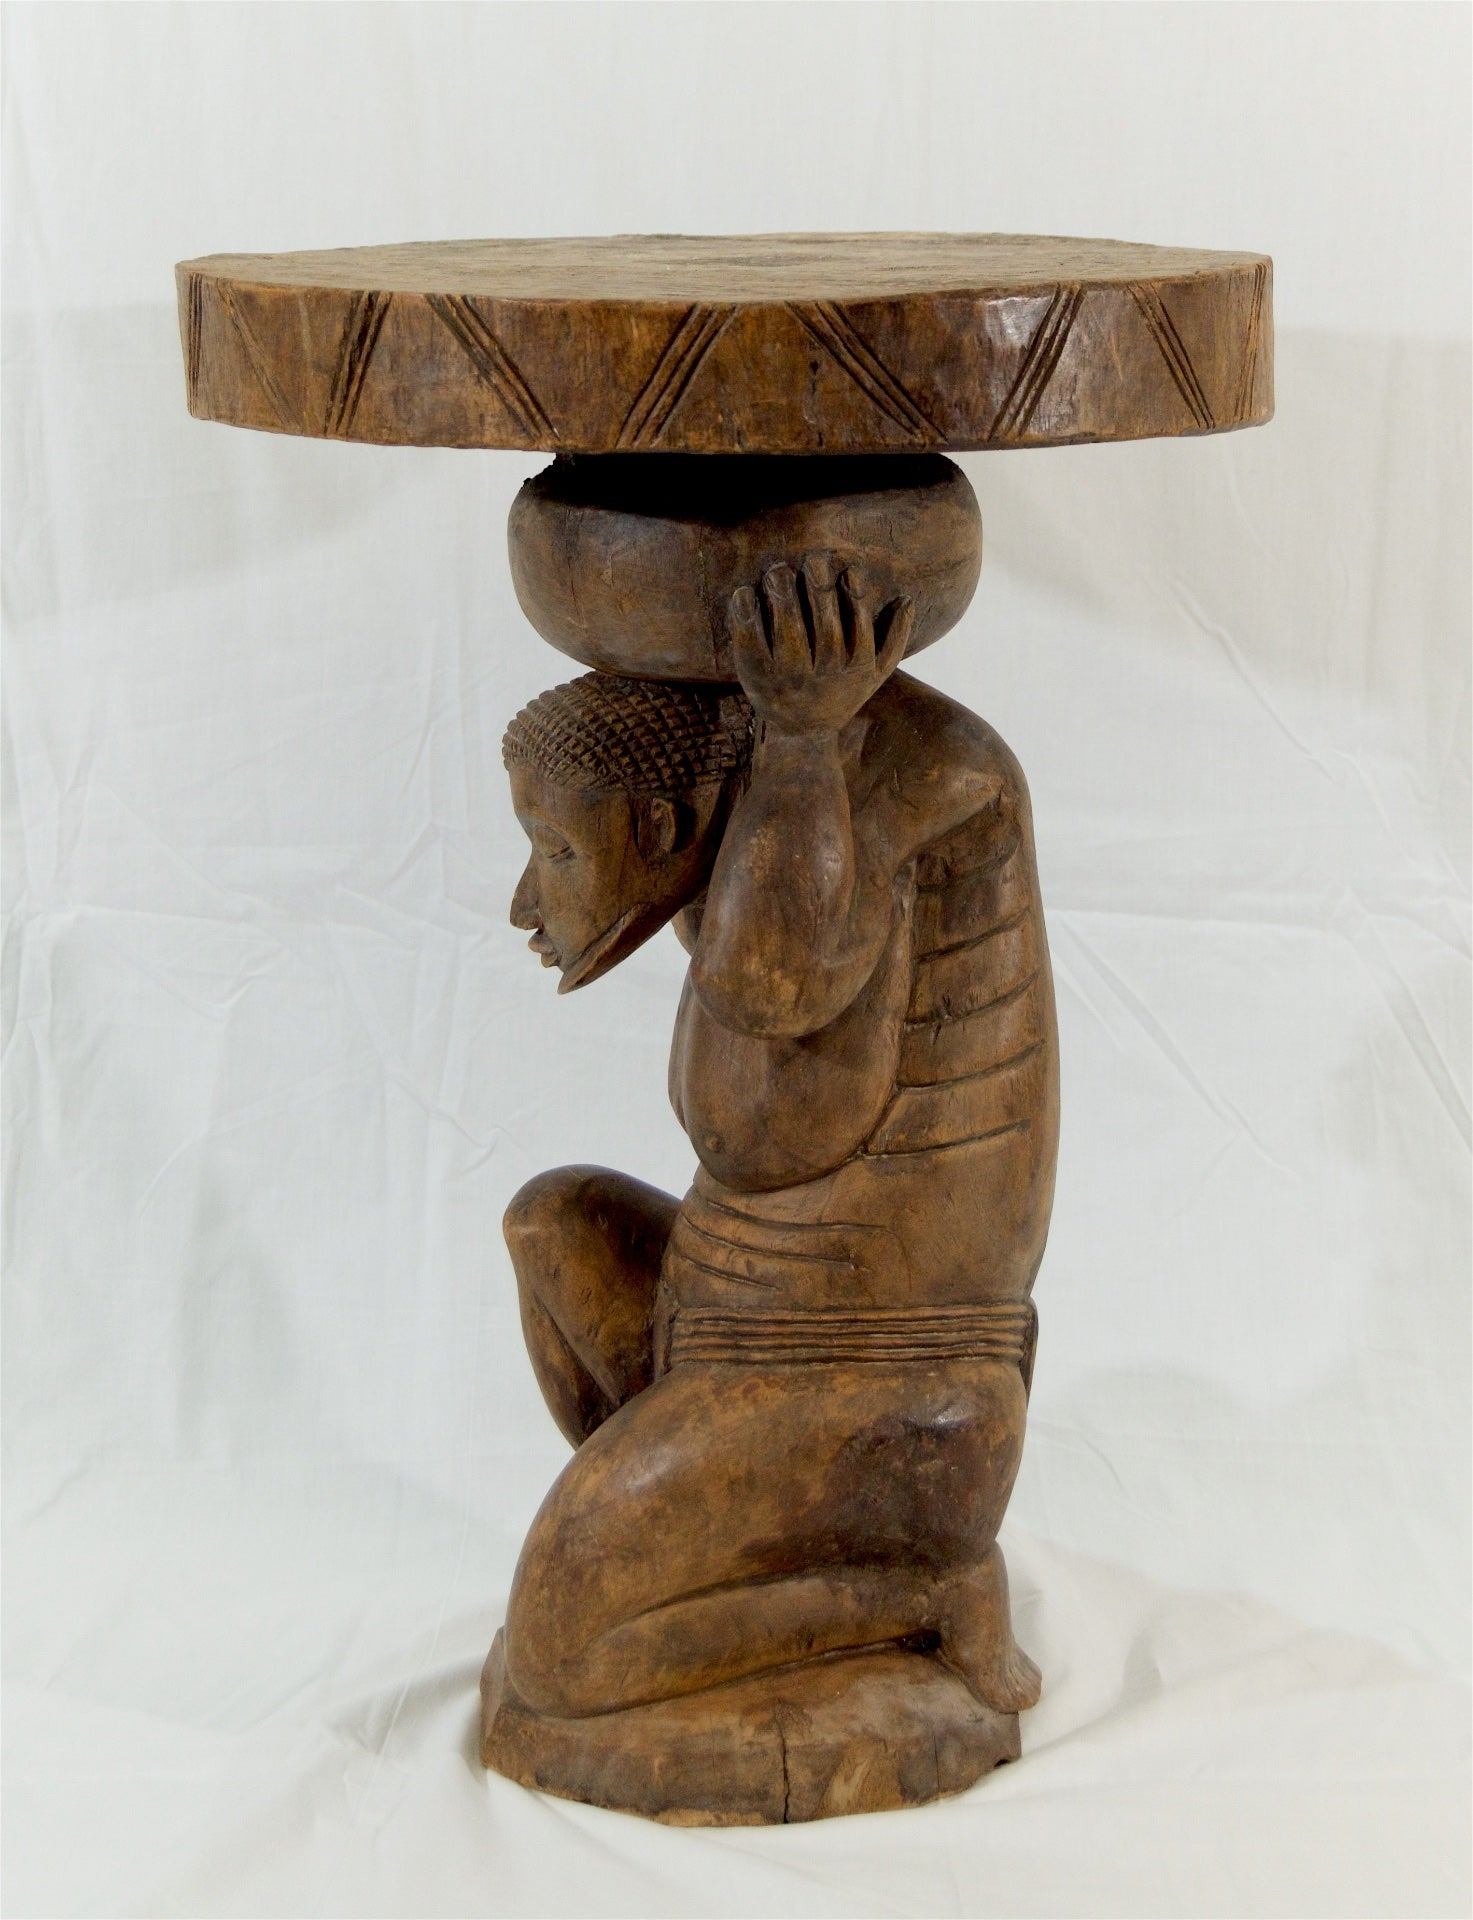 Tribal Carved Wooden Table from Mali